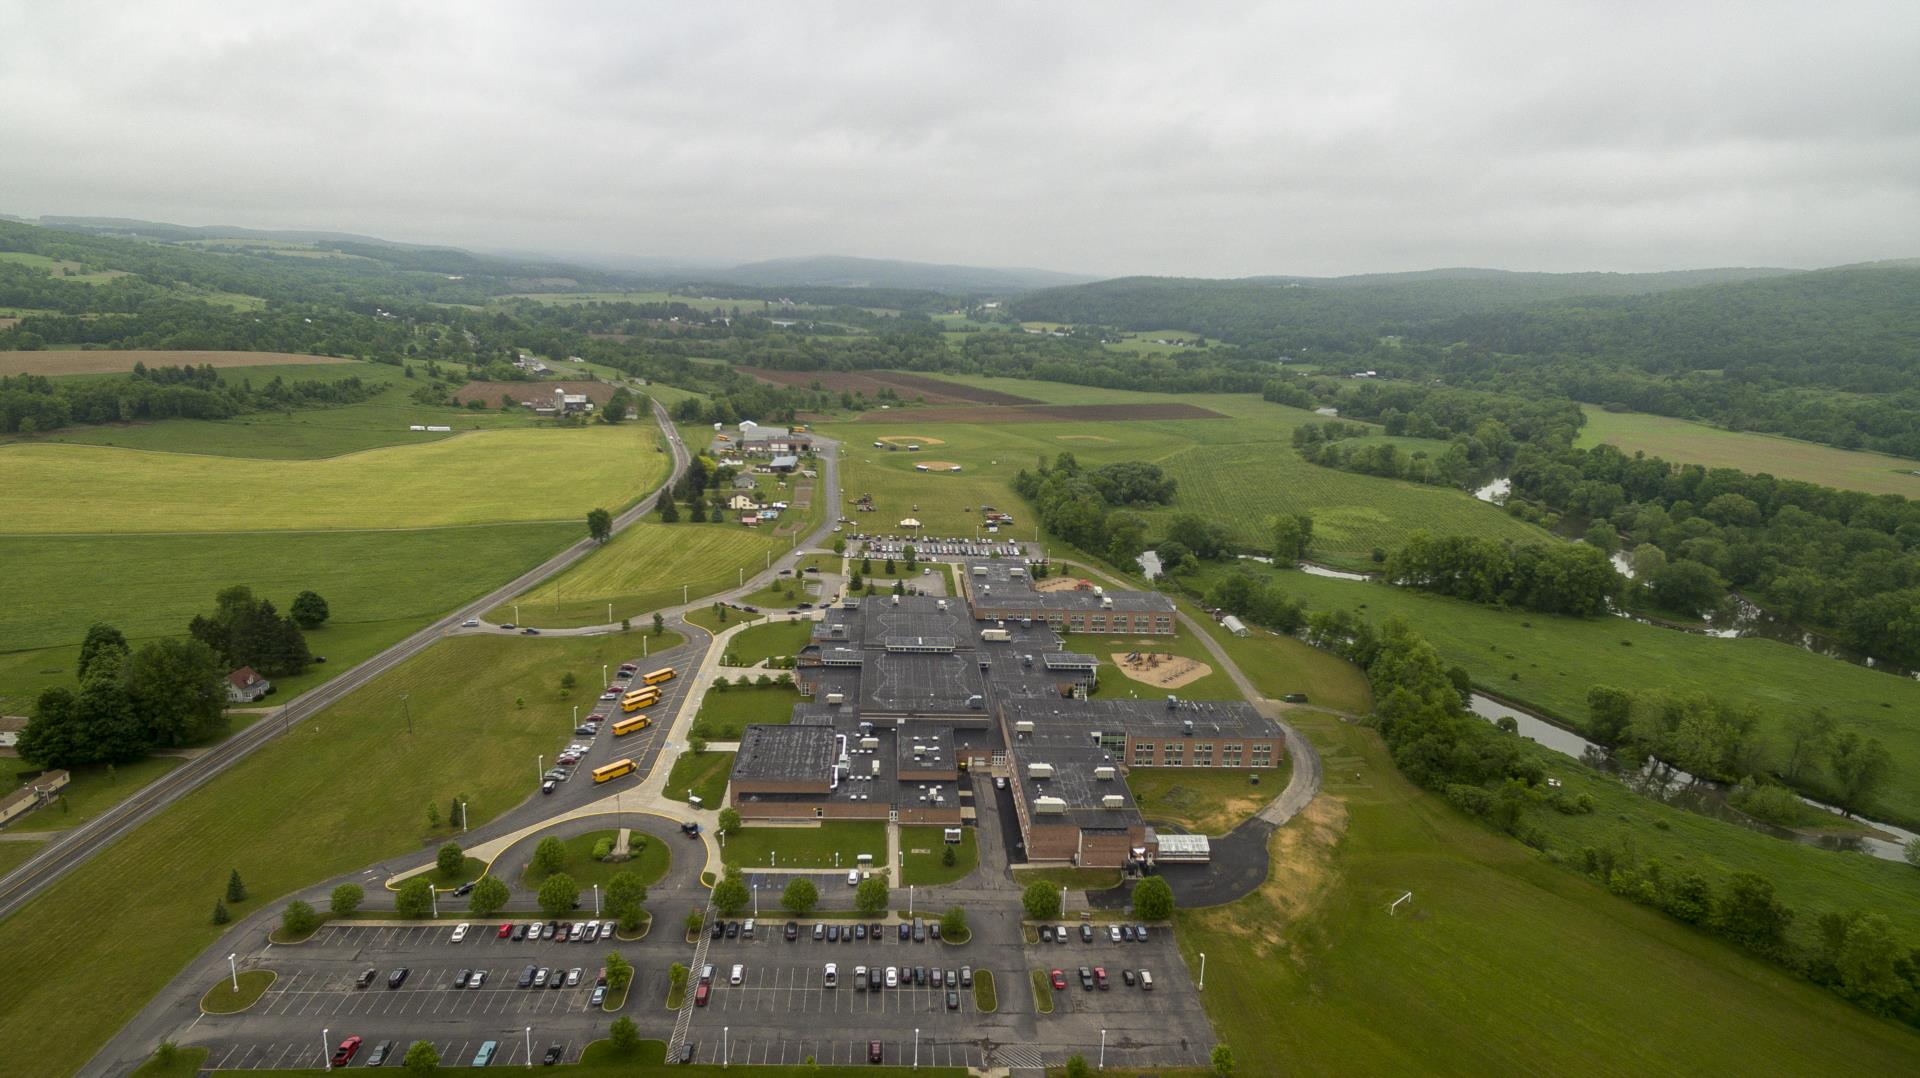 Aerial view looking a the school in foreground center and the valley headed north